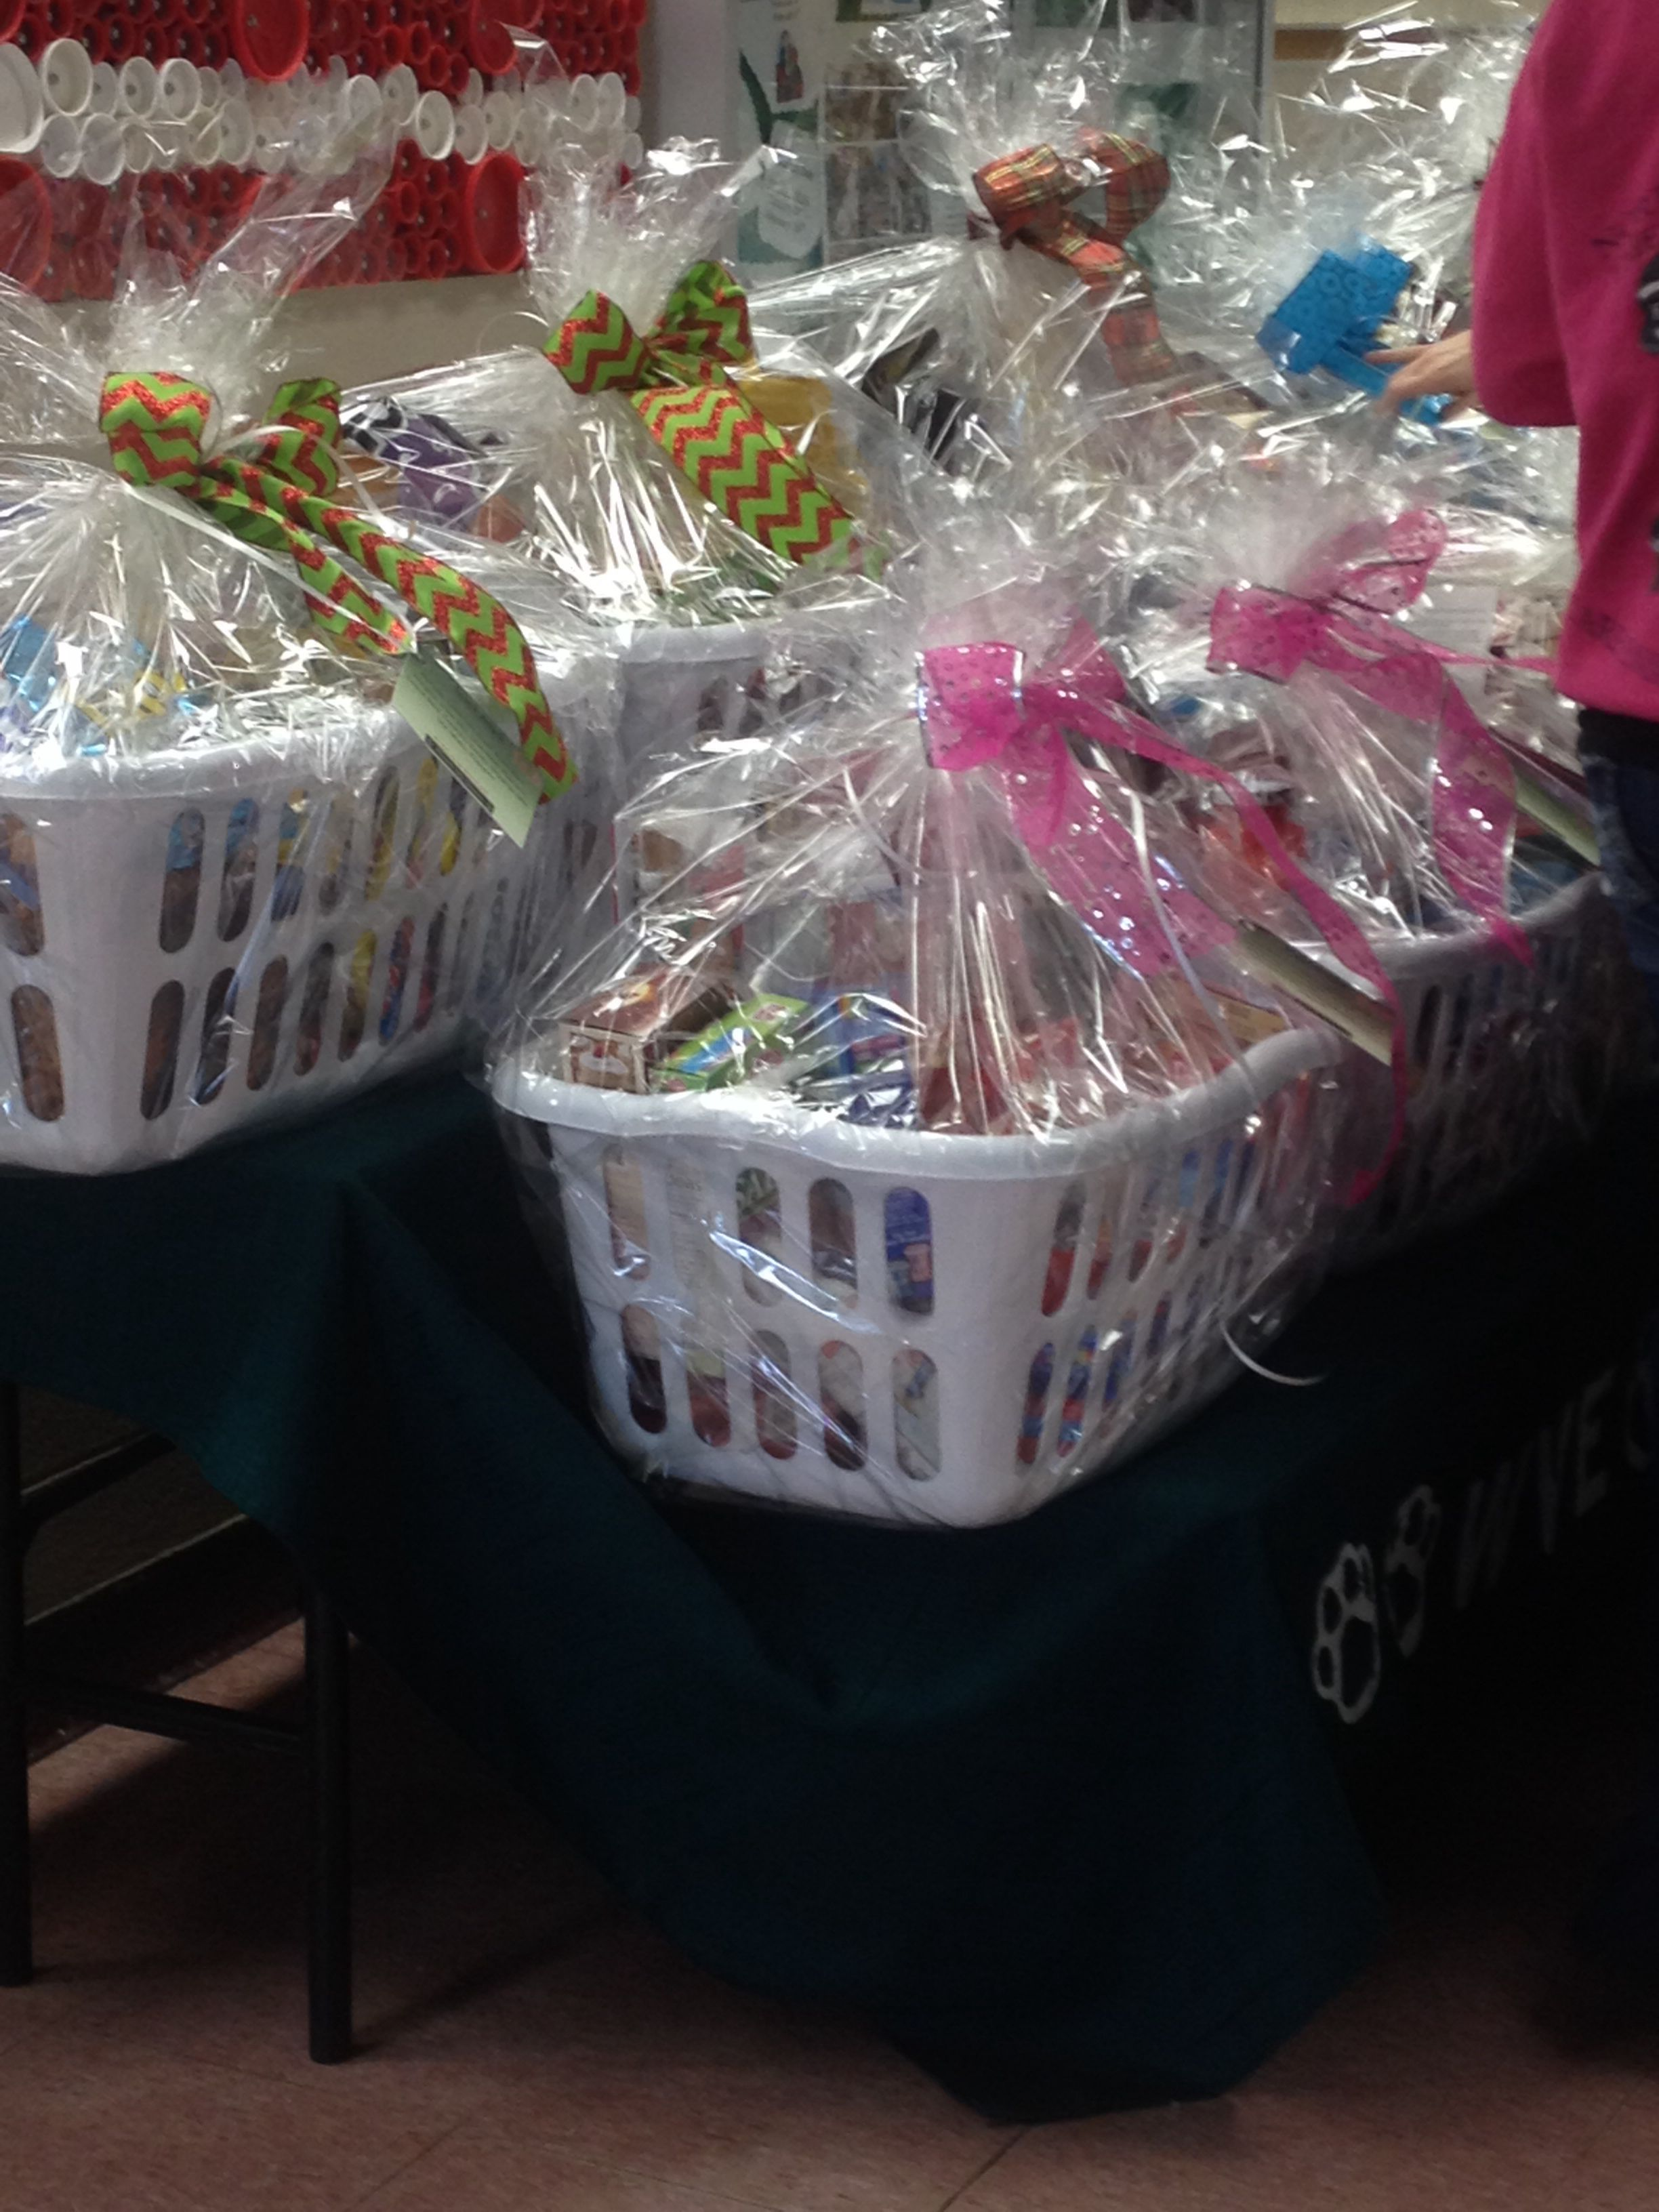 raffling baskets formed from laundry baskets